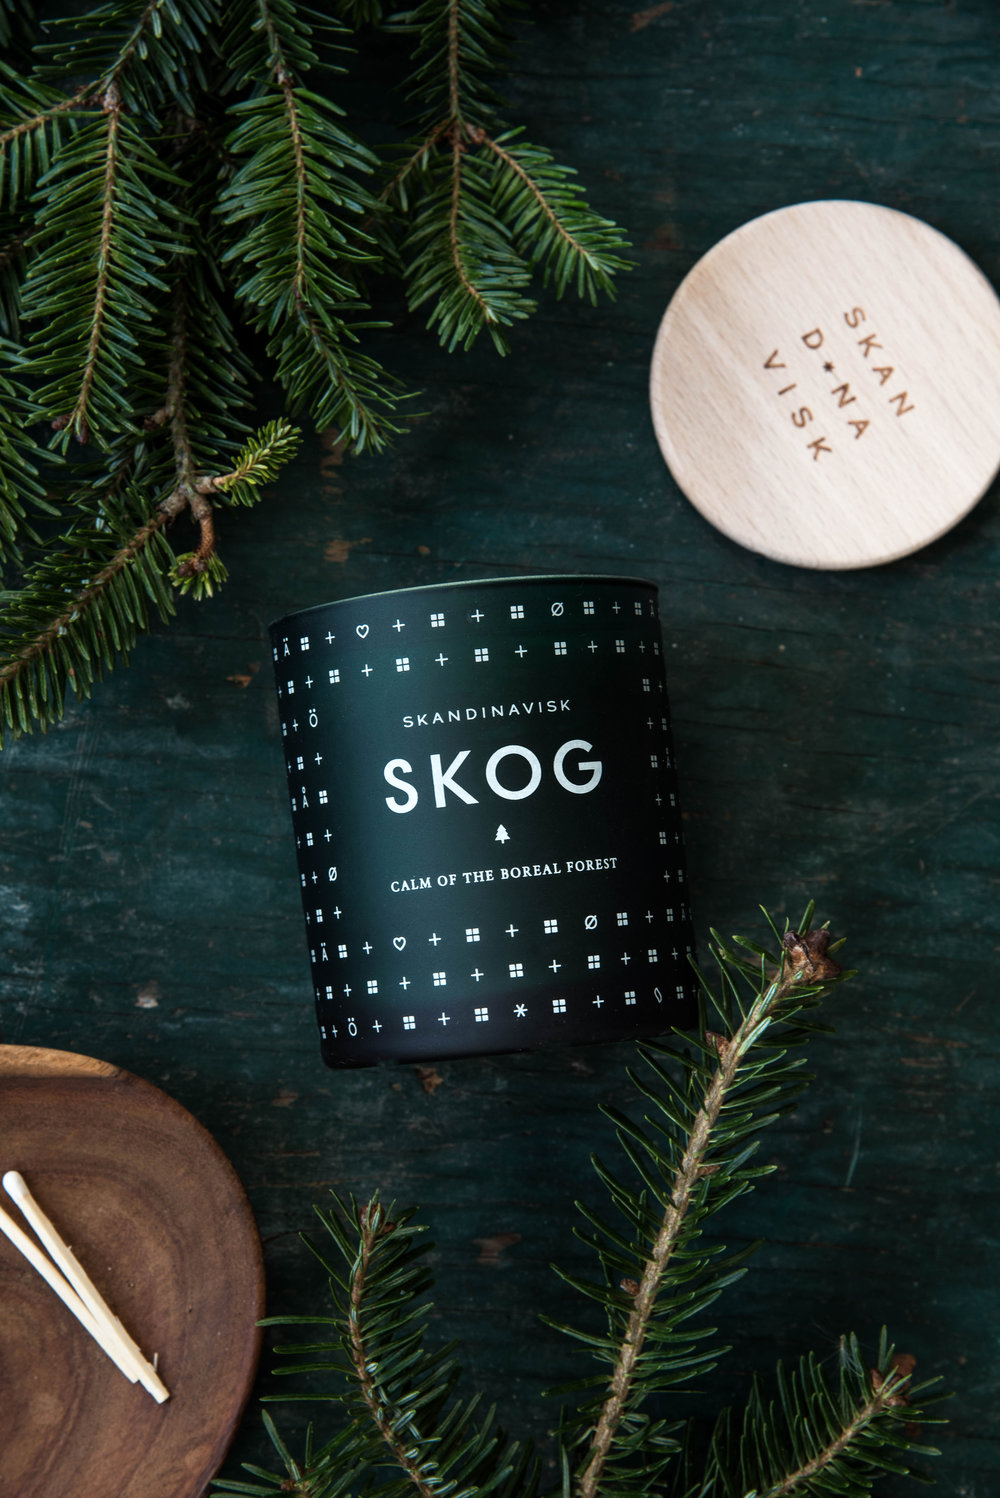 ROSE & IVY Journal Creating Cozy Festive Candles That Smell Like the Holidays Skog